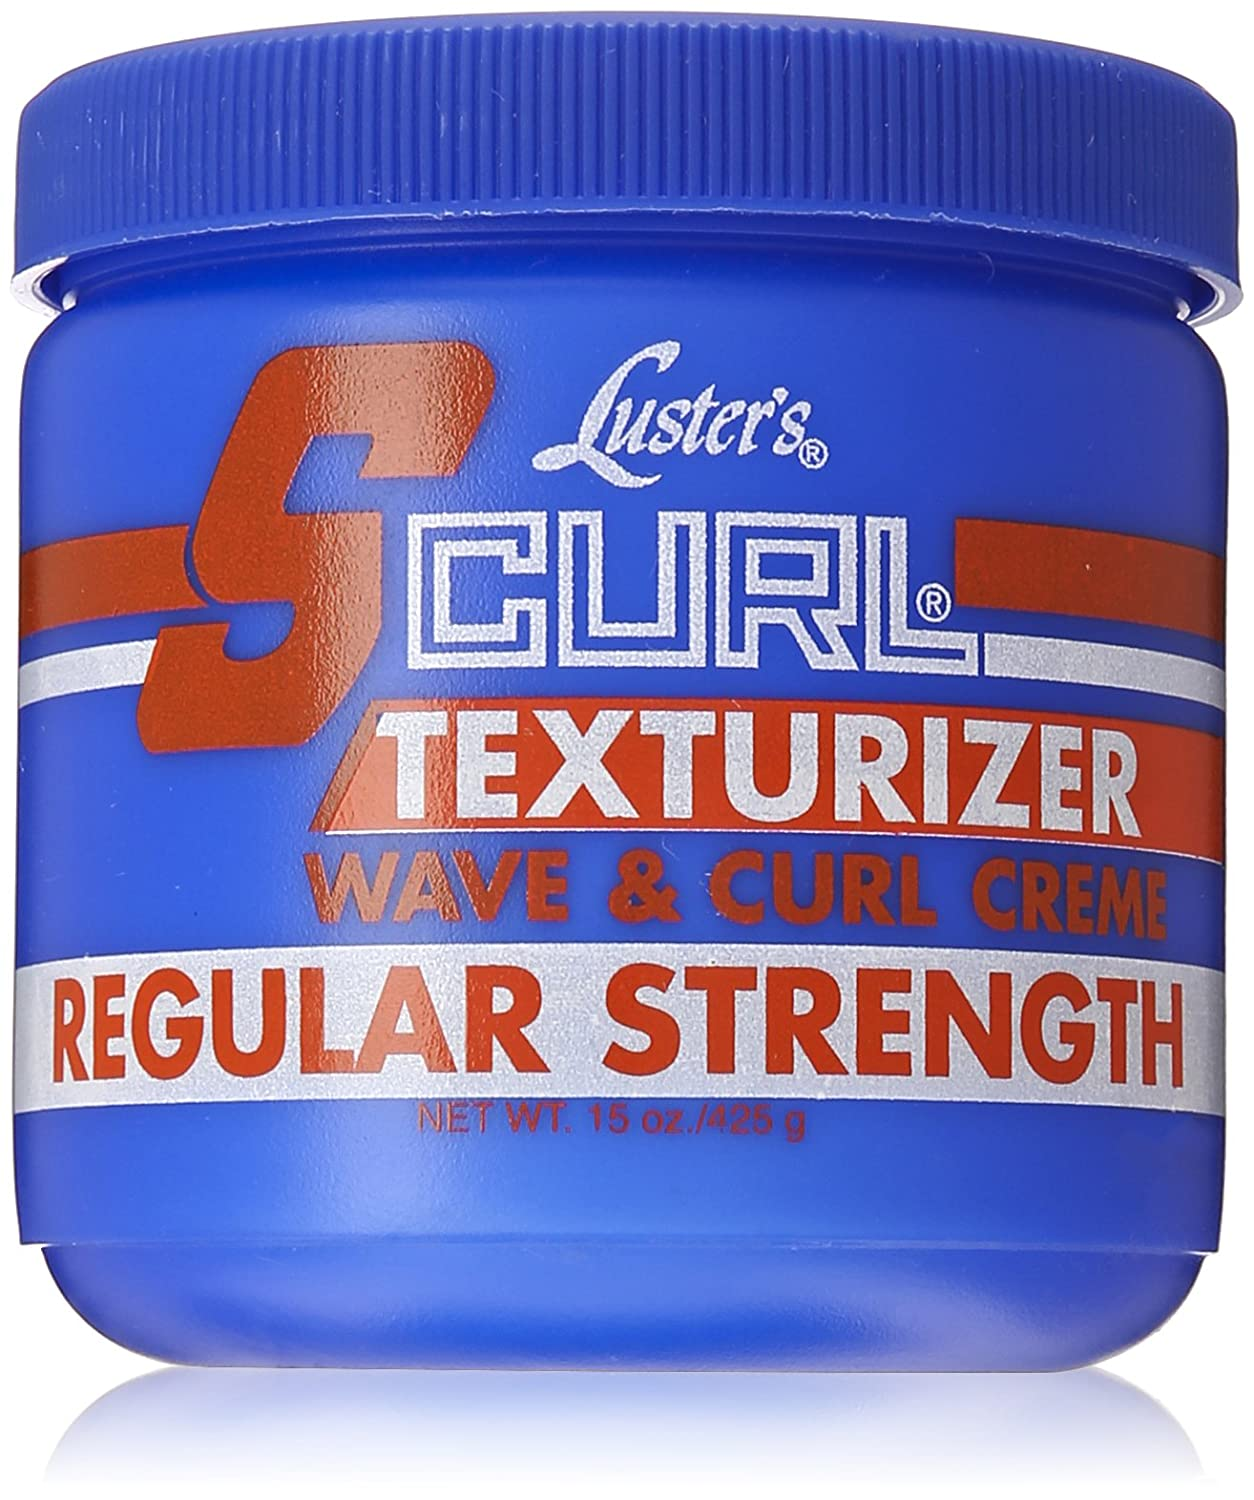 Luster's S Curl Texturizer Regular Strength, 15 Ounce Atlas Ethnic